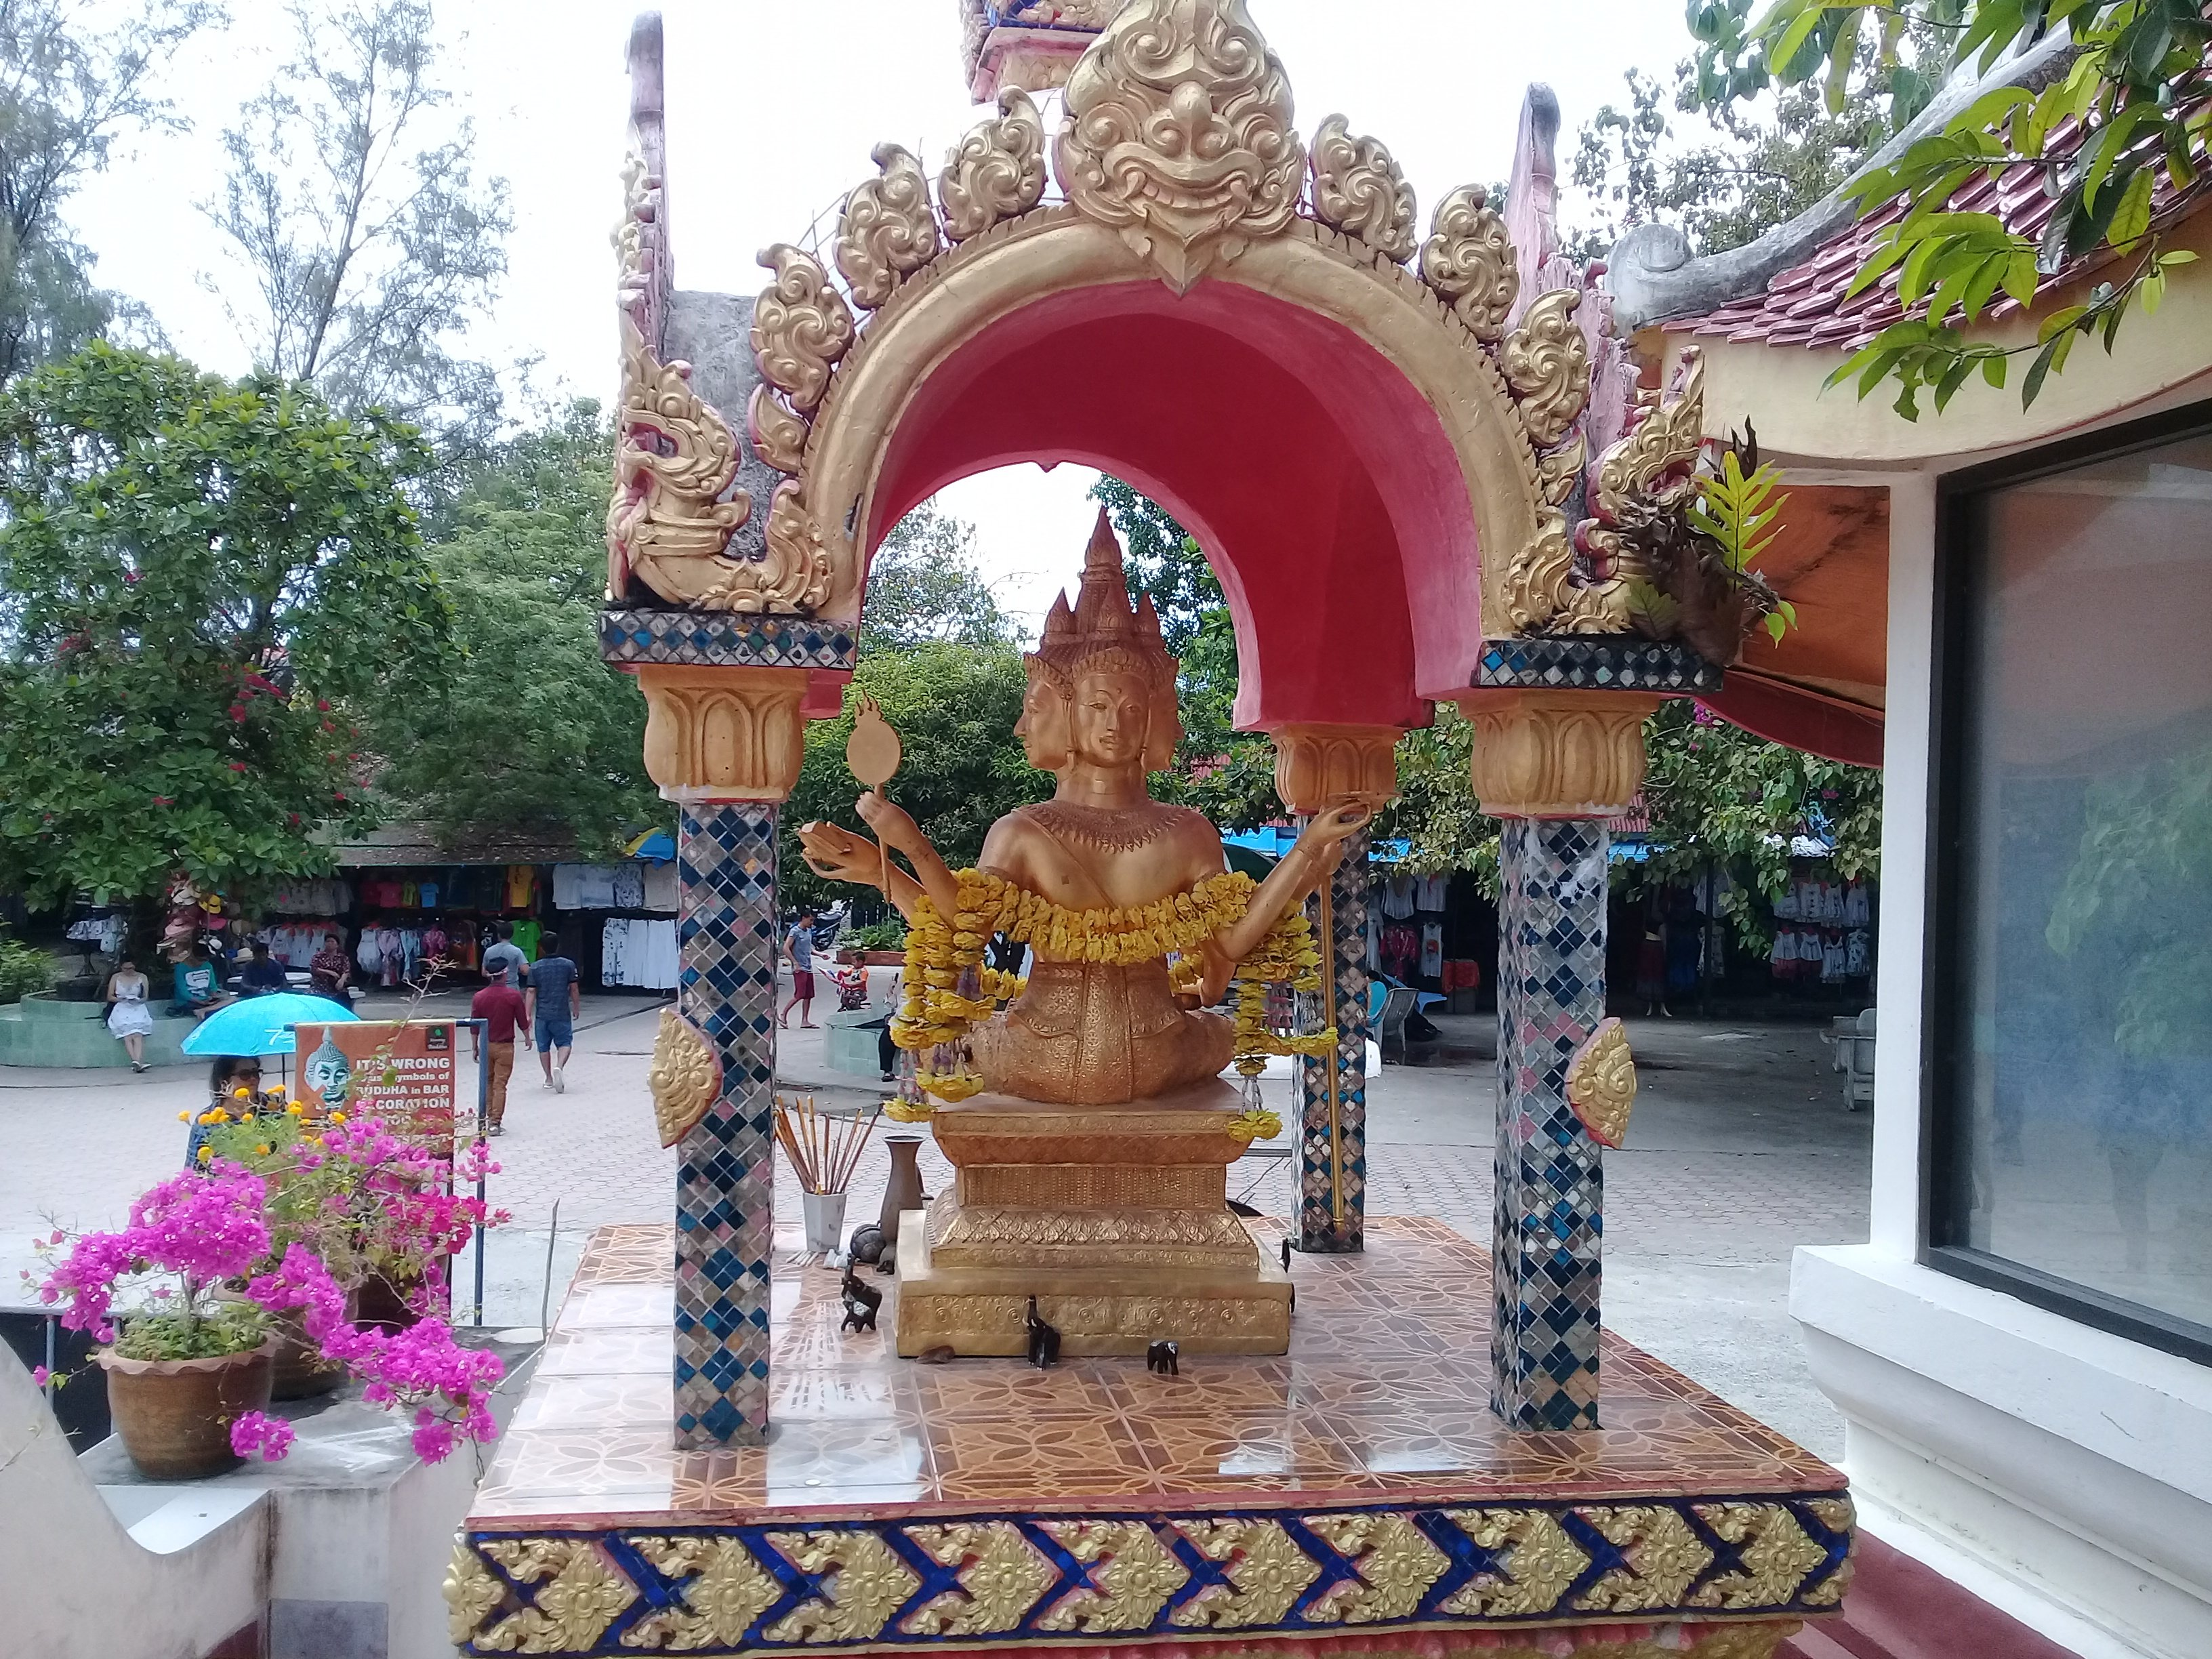 Four faced Buddha at Wat Phra Yai in Koh Samui